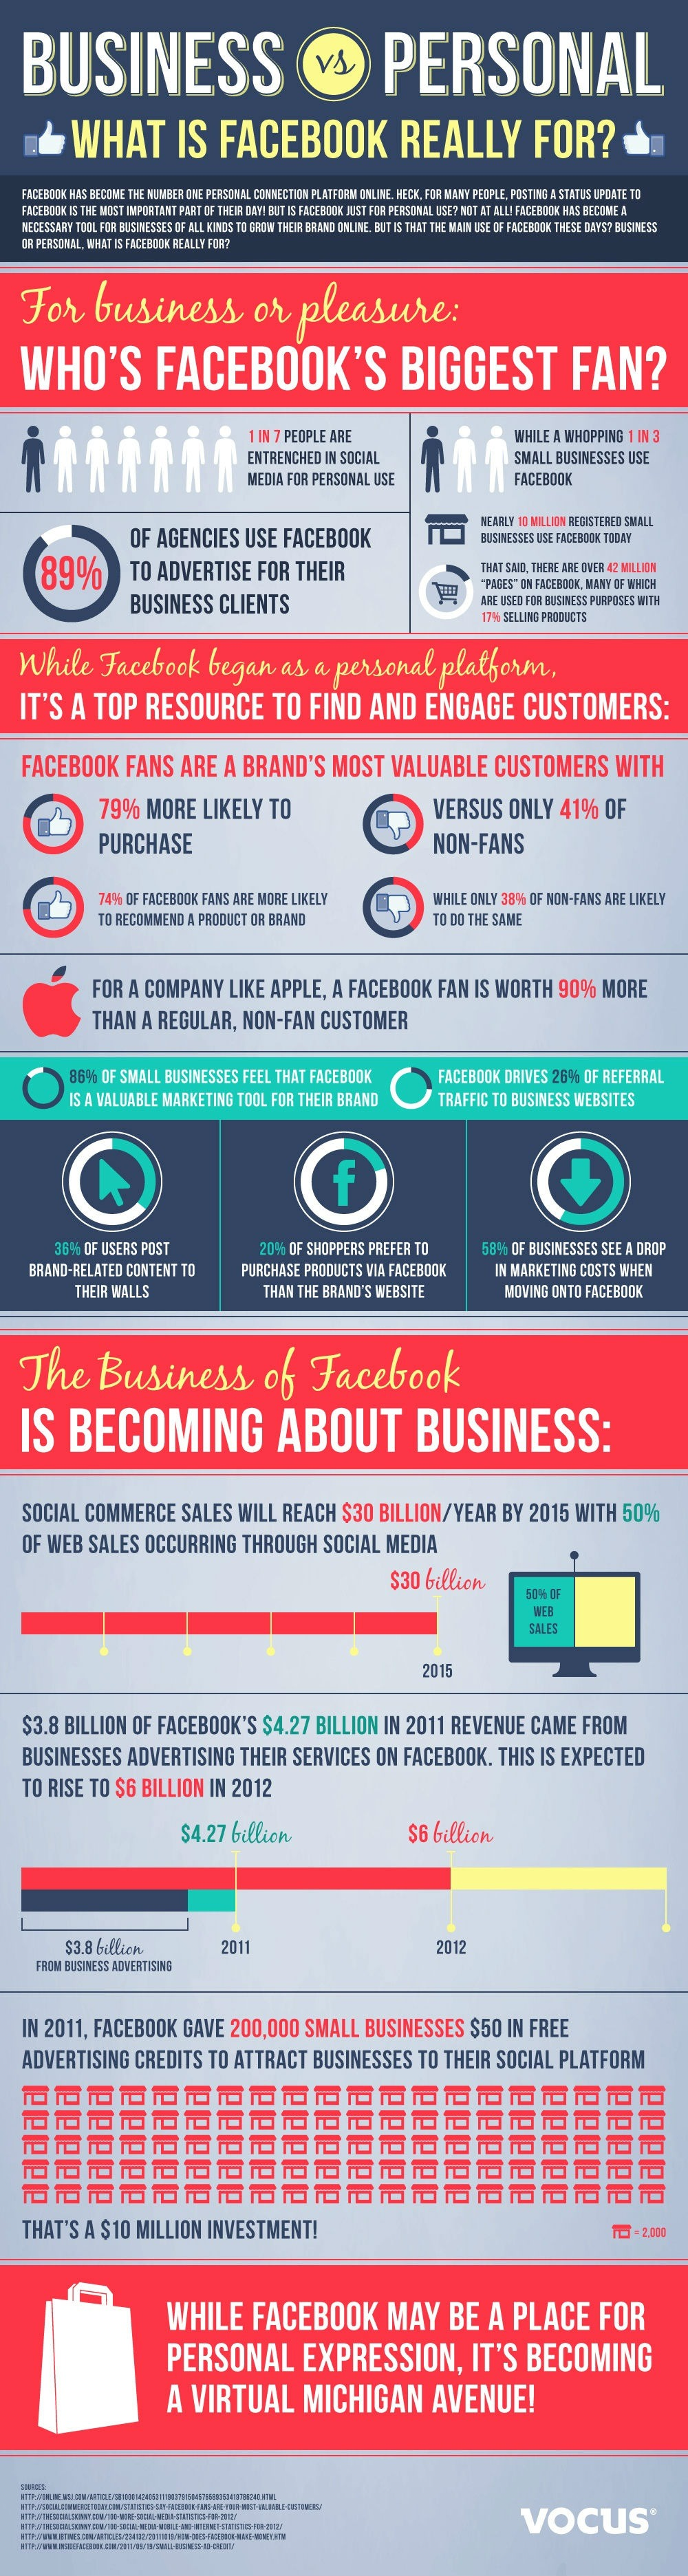 Research published in September 2012 revealed Facebook drives 26% of business website traffic; about 20% of shoppers prefer buying products through a brand's Facebook page, rather than its website. By 2015 it is expected that social media conversions will account for half of web sales. Source: http://mashable.com/2012/11/01/facebook-sales/